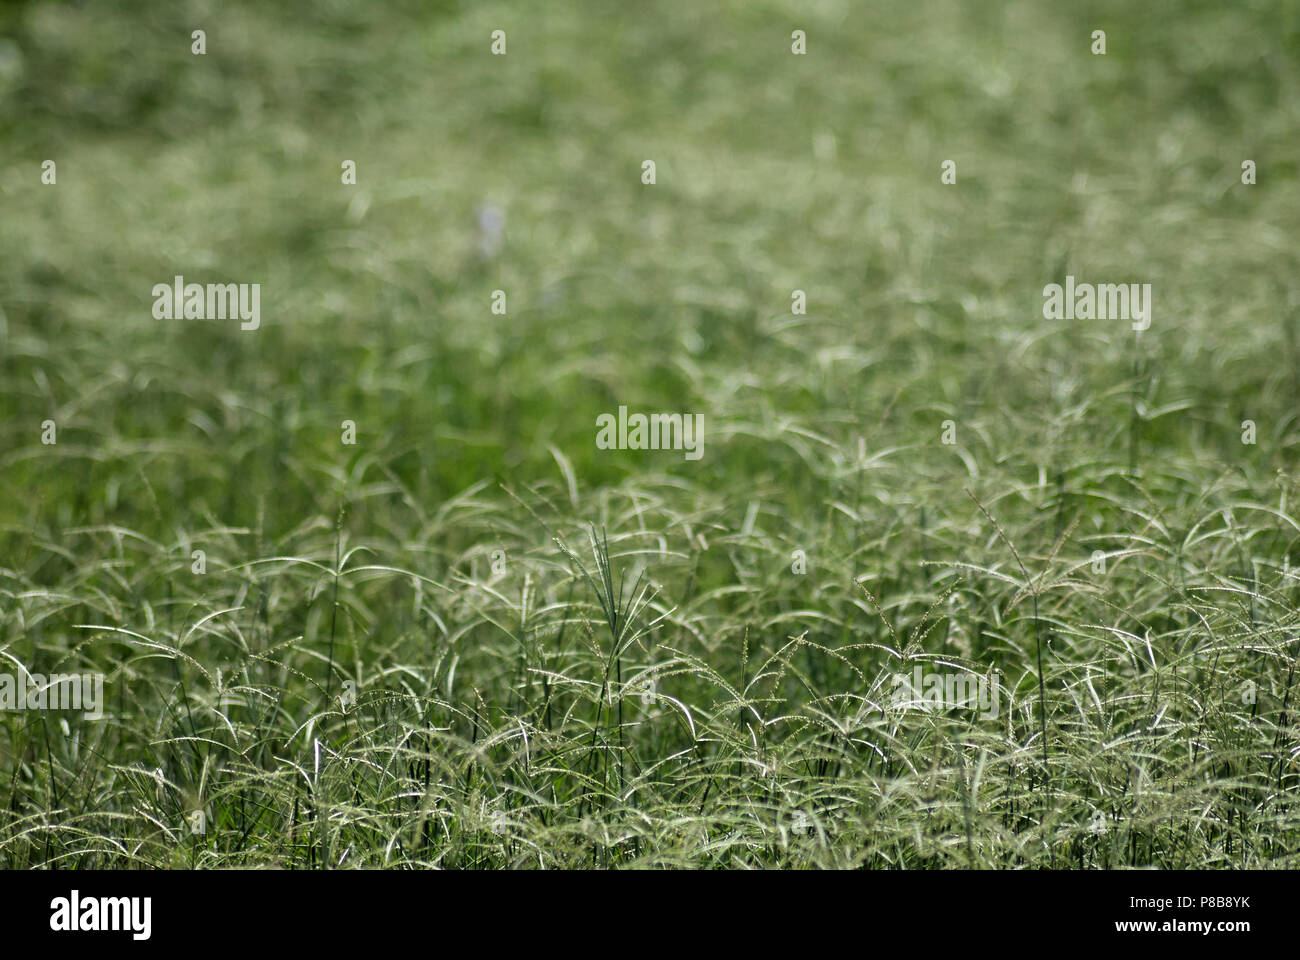 Grass in a landfill - Stock Image